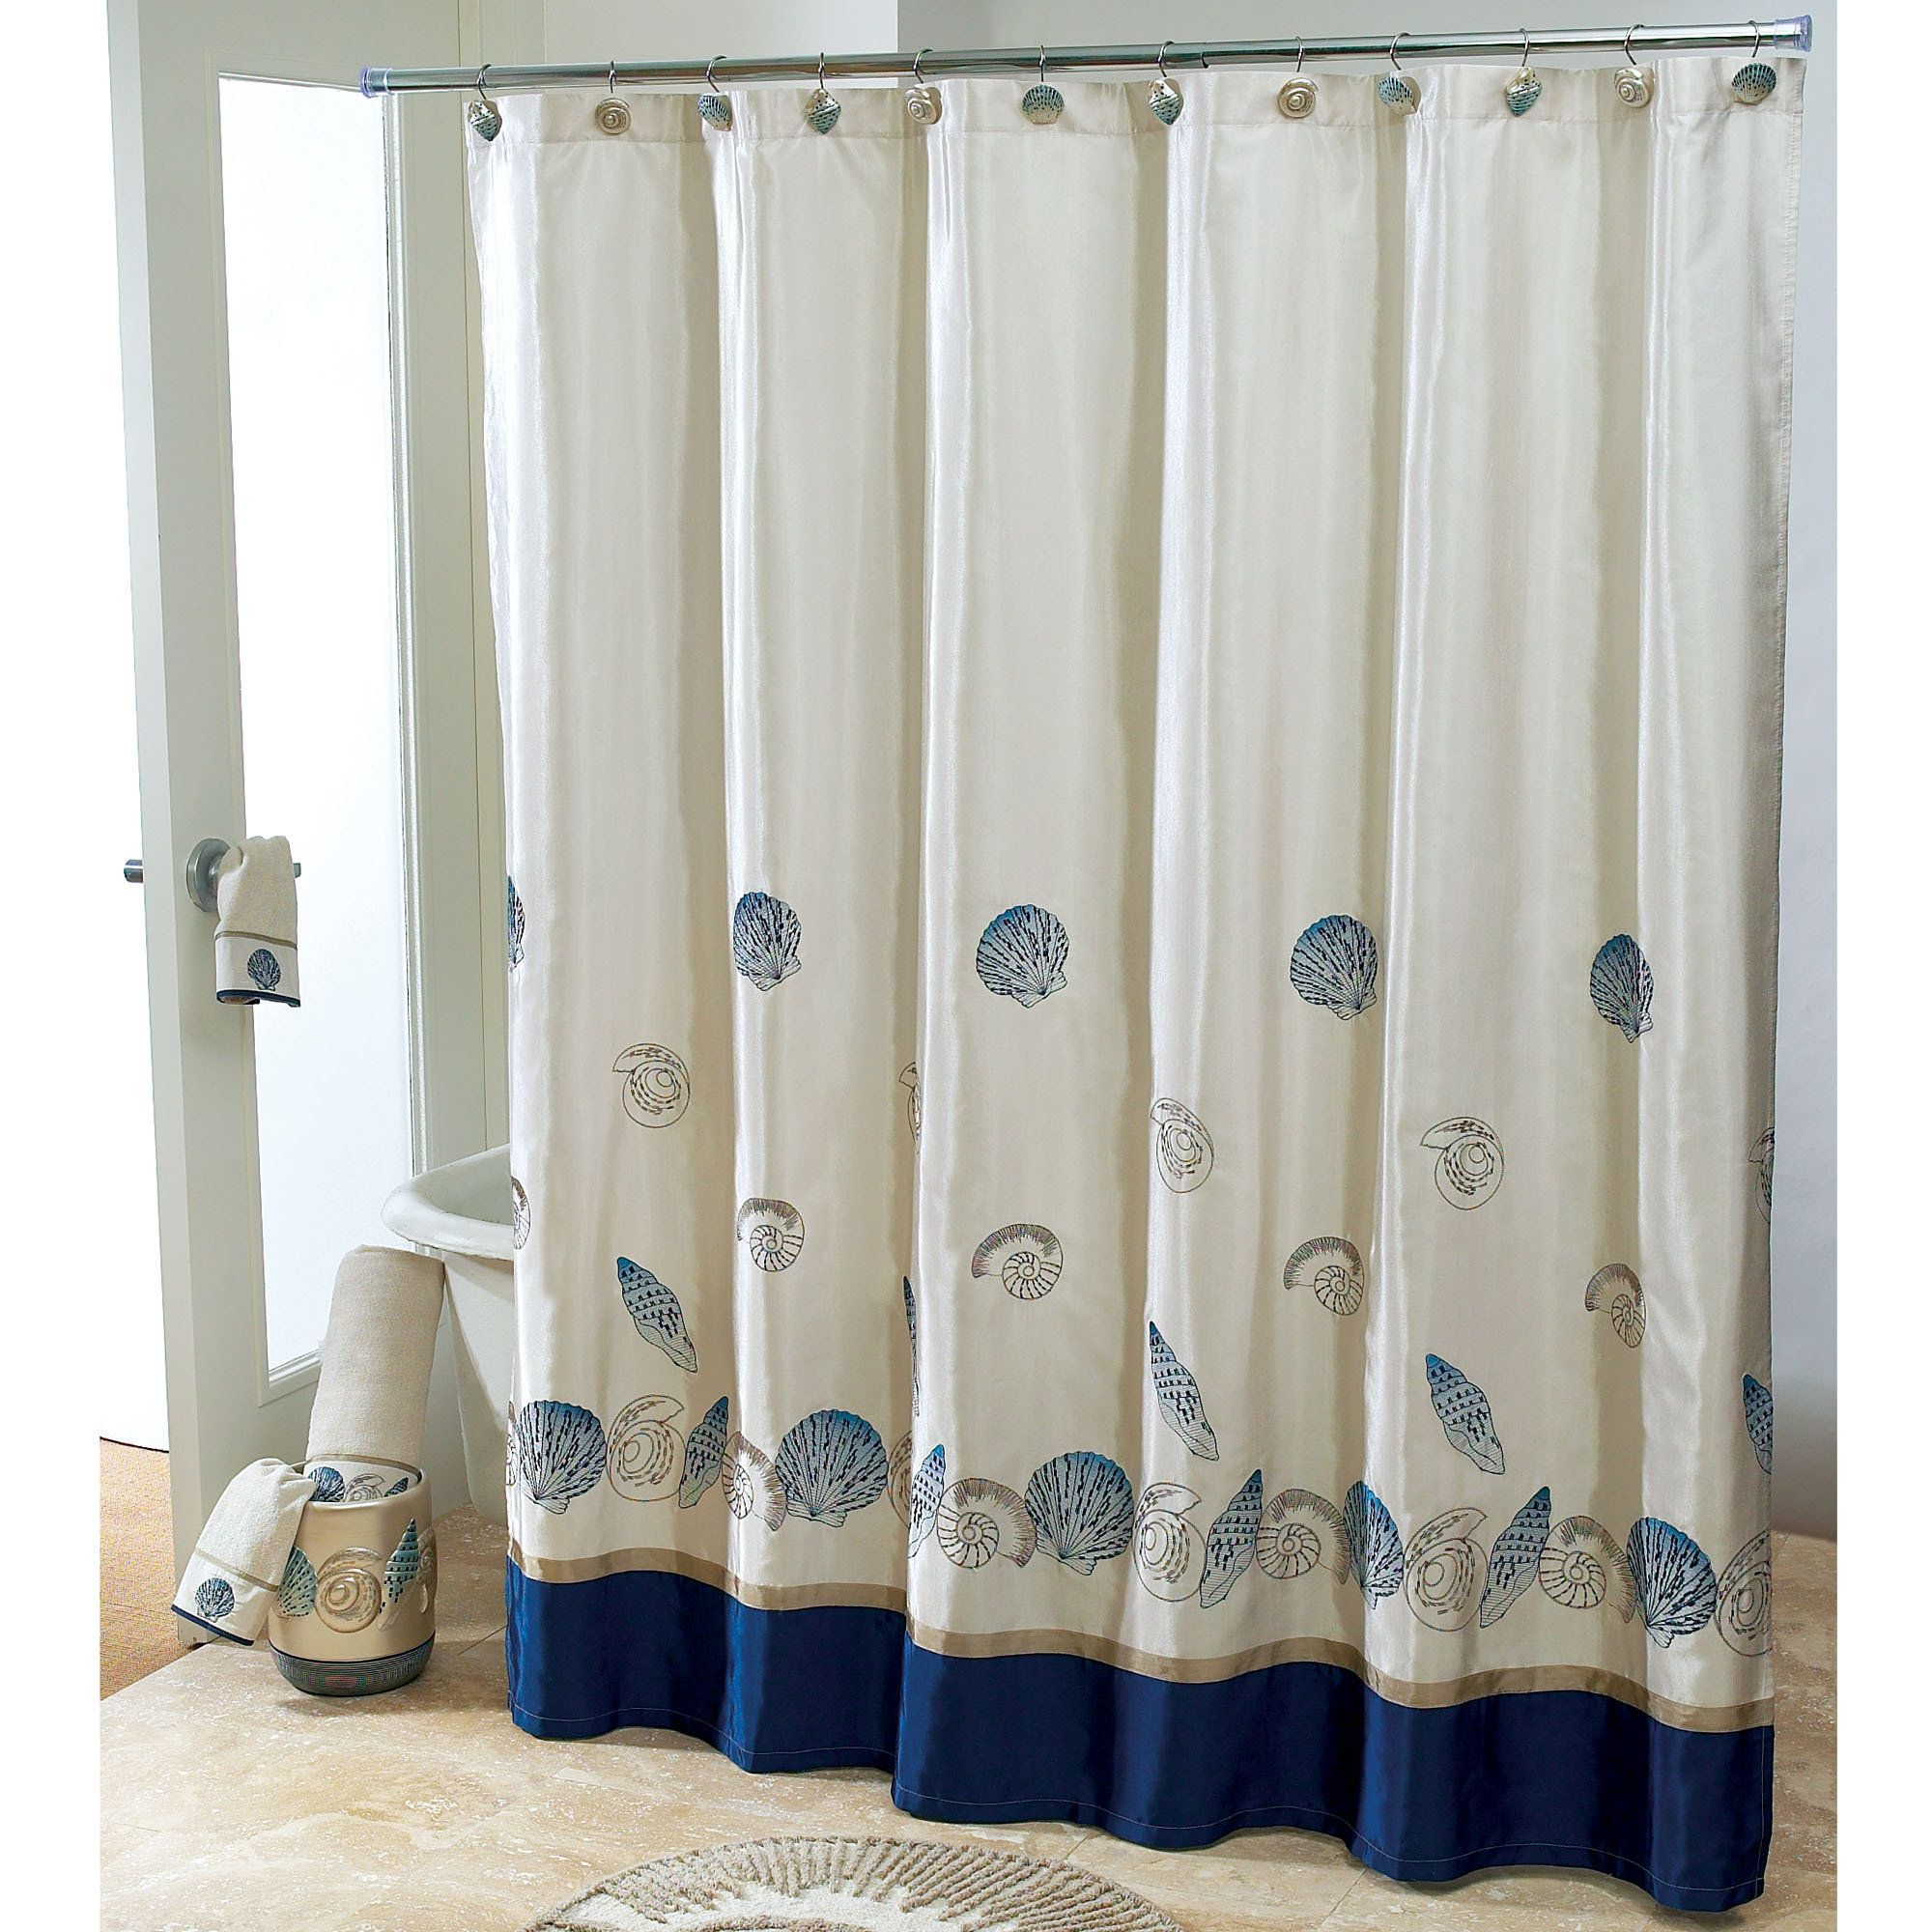 Choosing The Best Shower Curtain Check It Out Bathroom Window